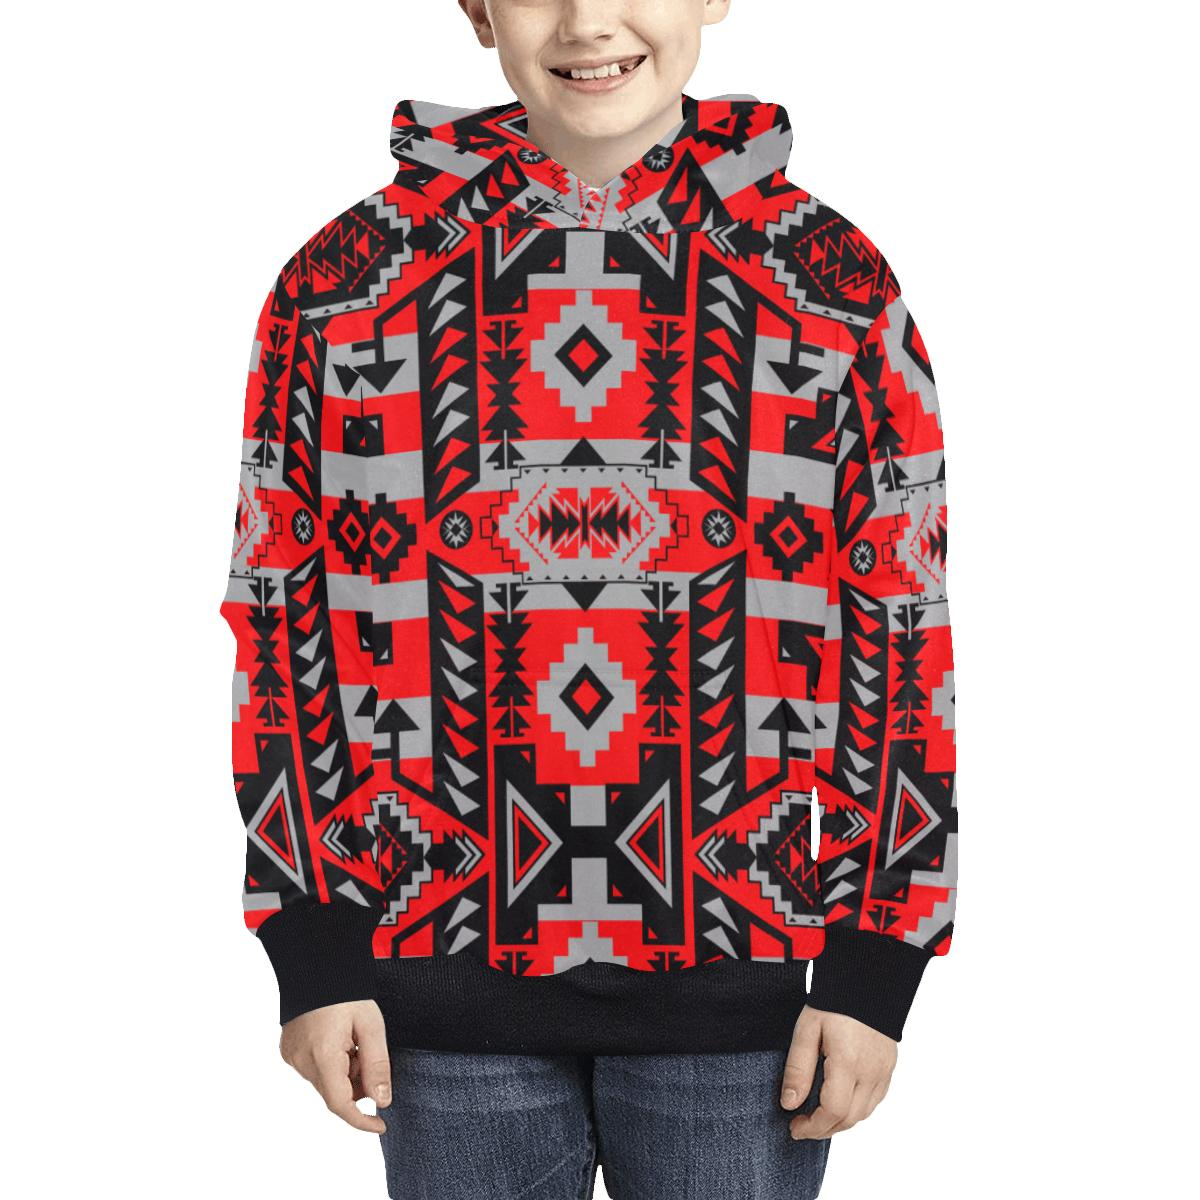 Chiefs Mountain Candy Sierra Kids' All Over Print Hoodie (Model H38) Kids' AOP Hoodie (H38) e-joyer